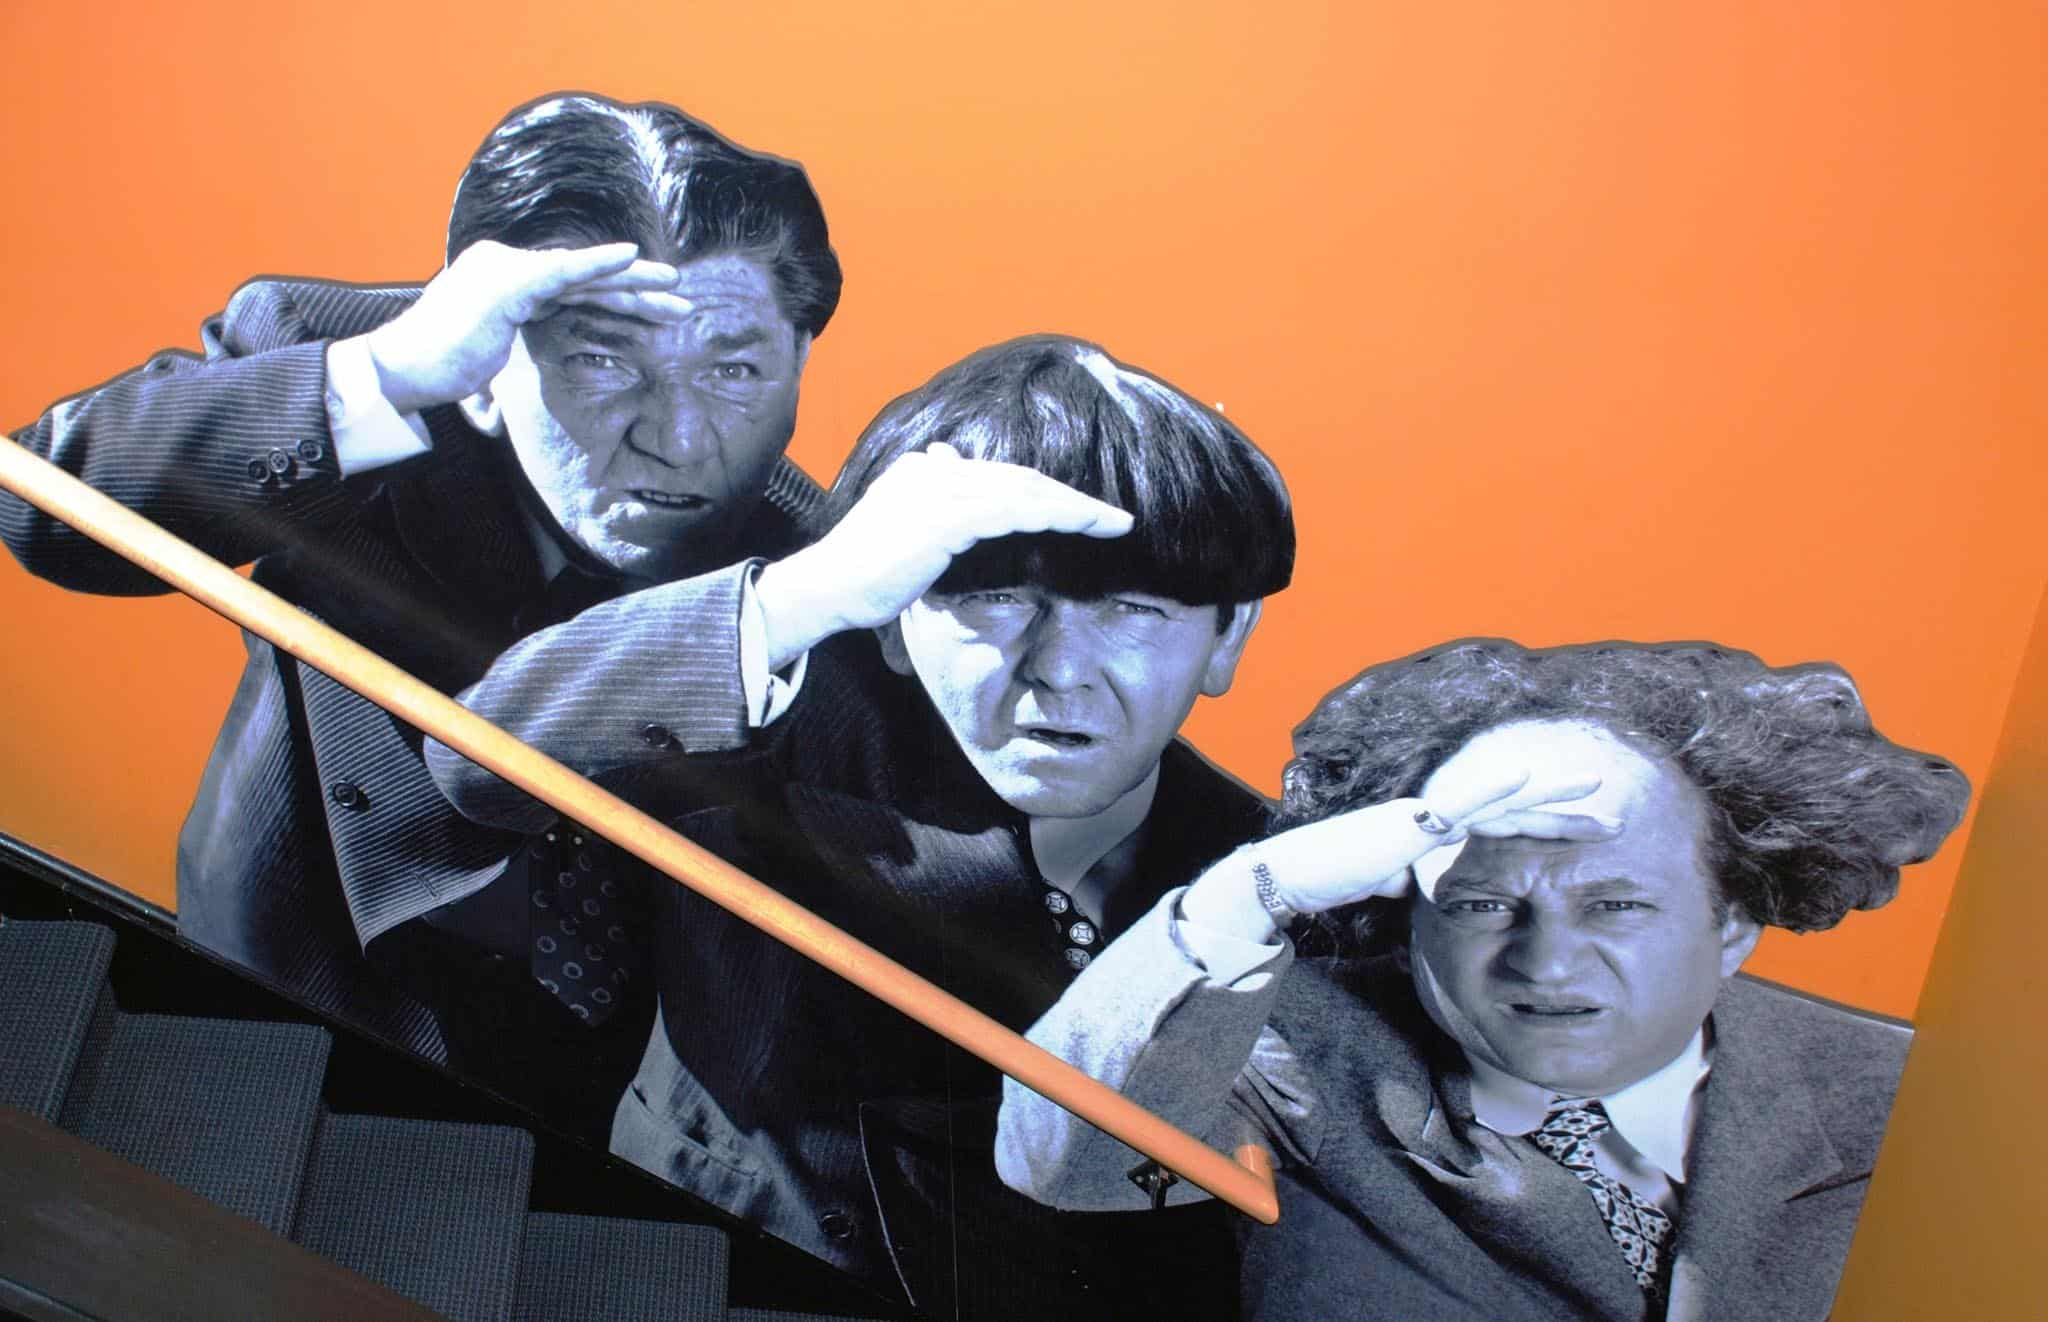 The Three Stooges painted into the stairwell at the Stoogeum